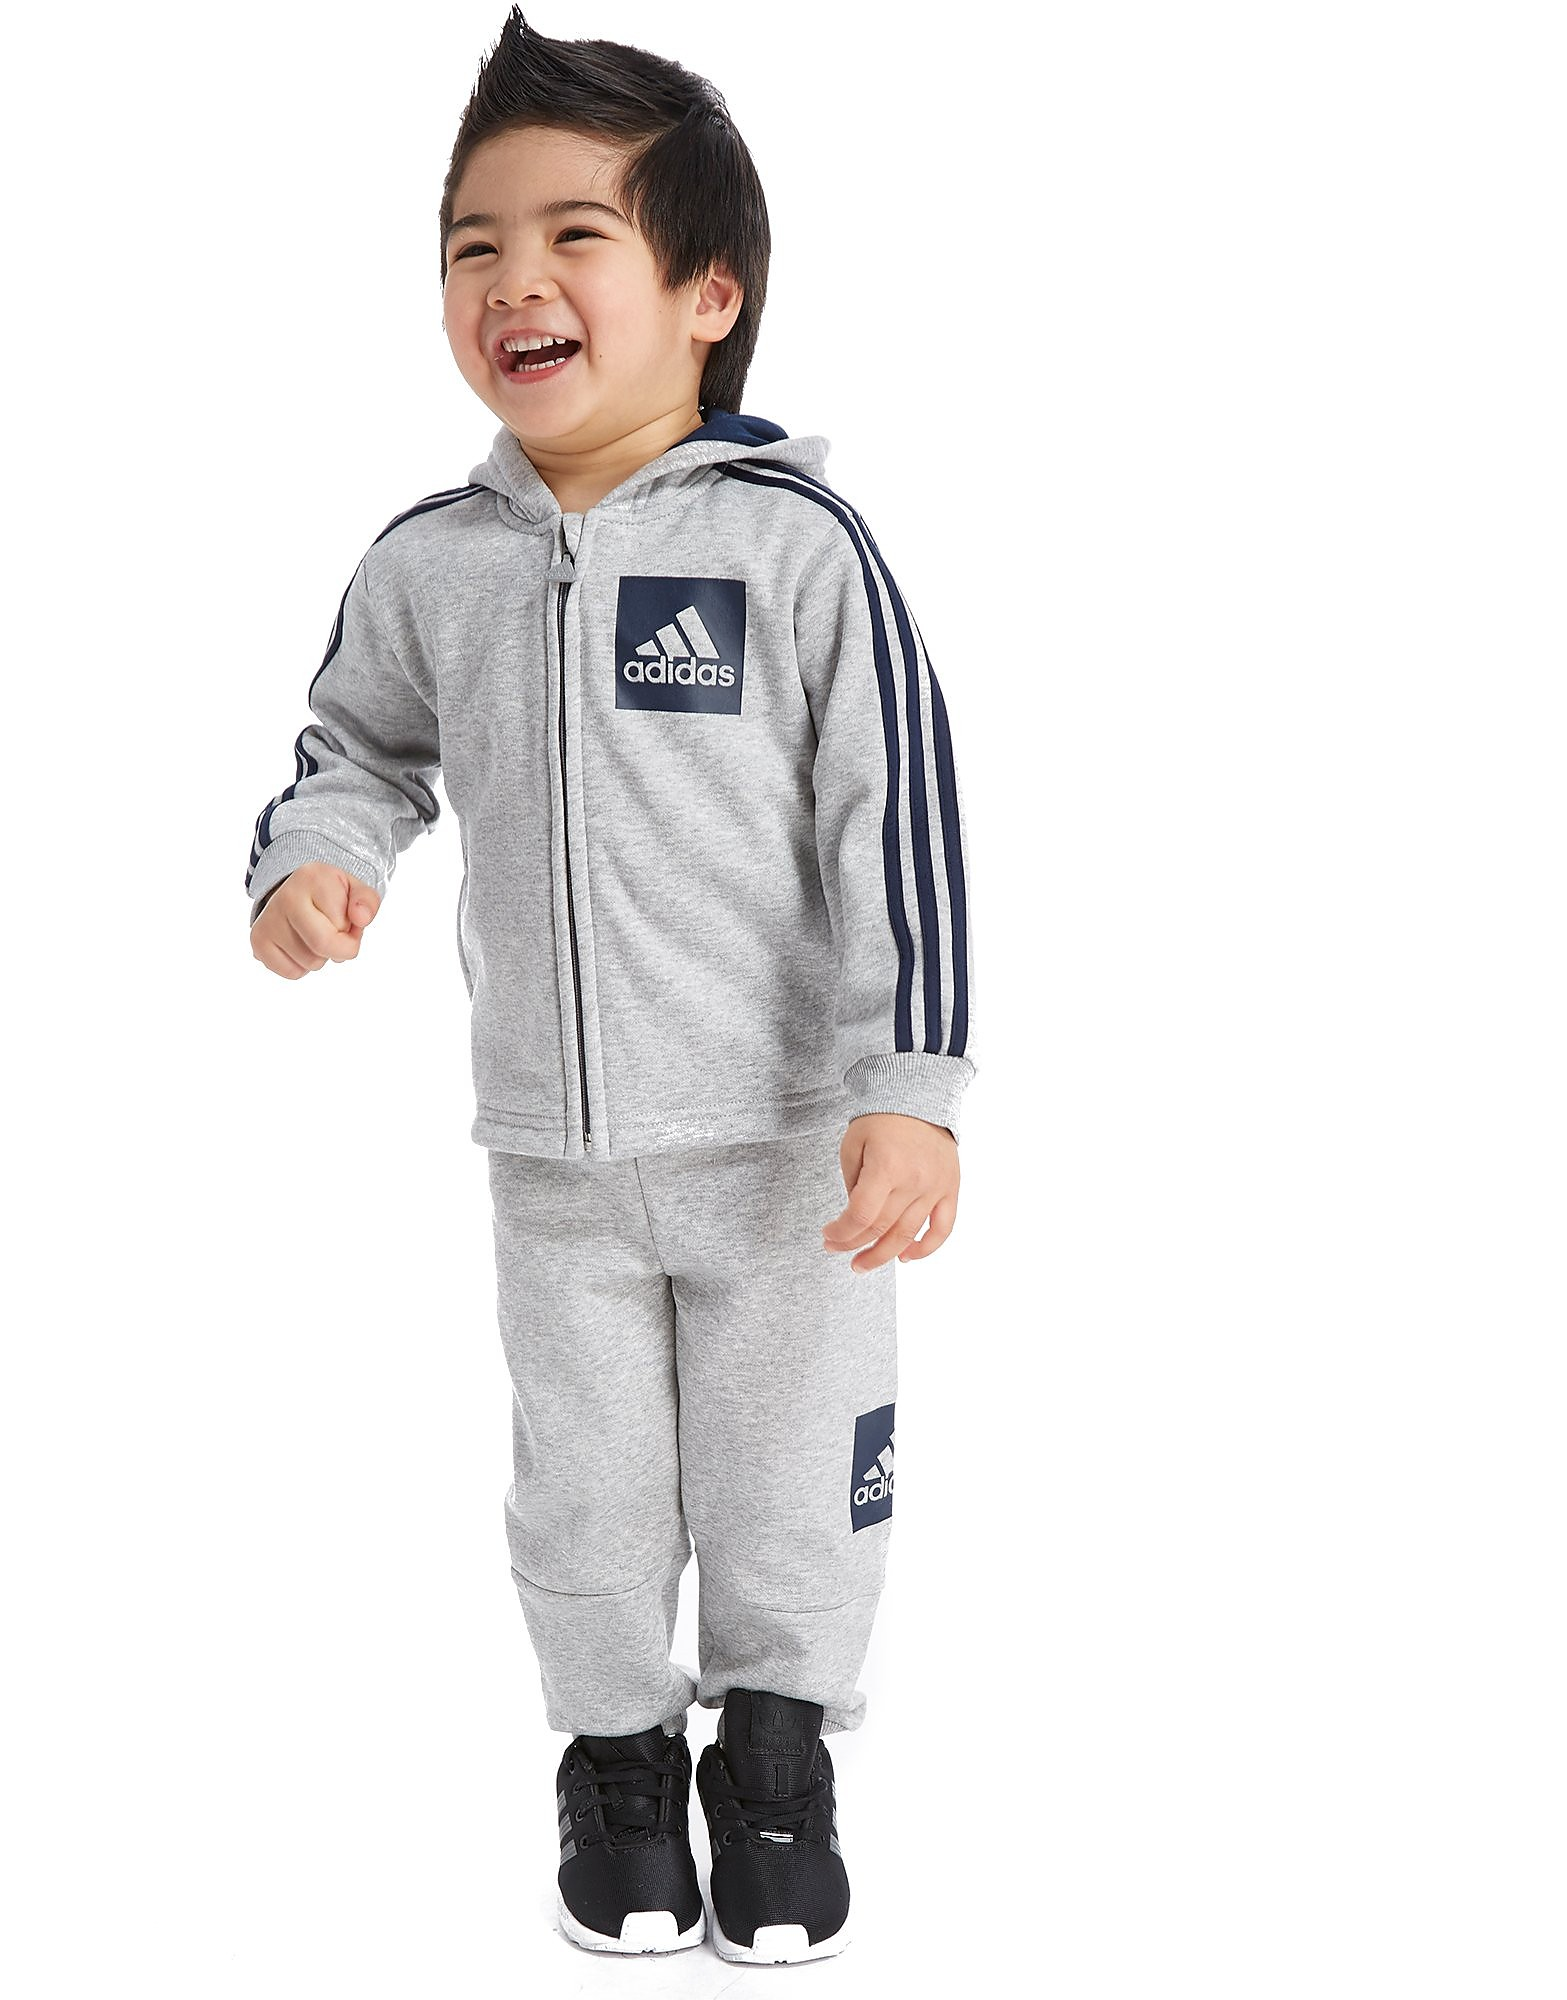 adidas 3-Stripes Essential Suit Infant